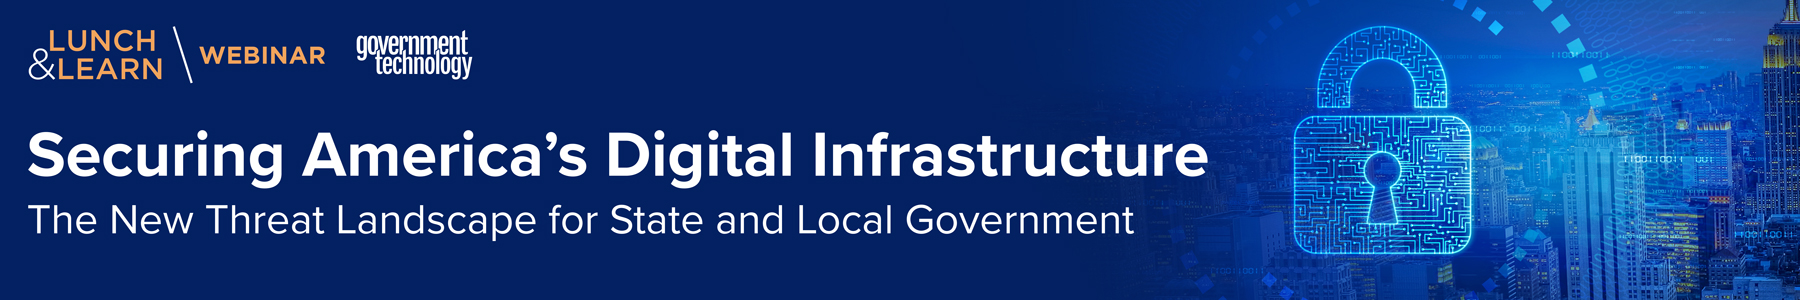 Securing America's Digital Infrastructure - The New Threat Landscape for State and Local Government